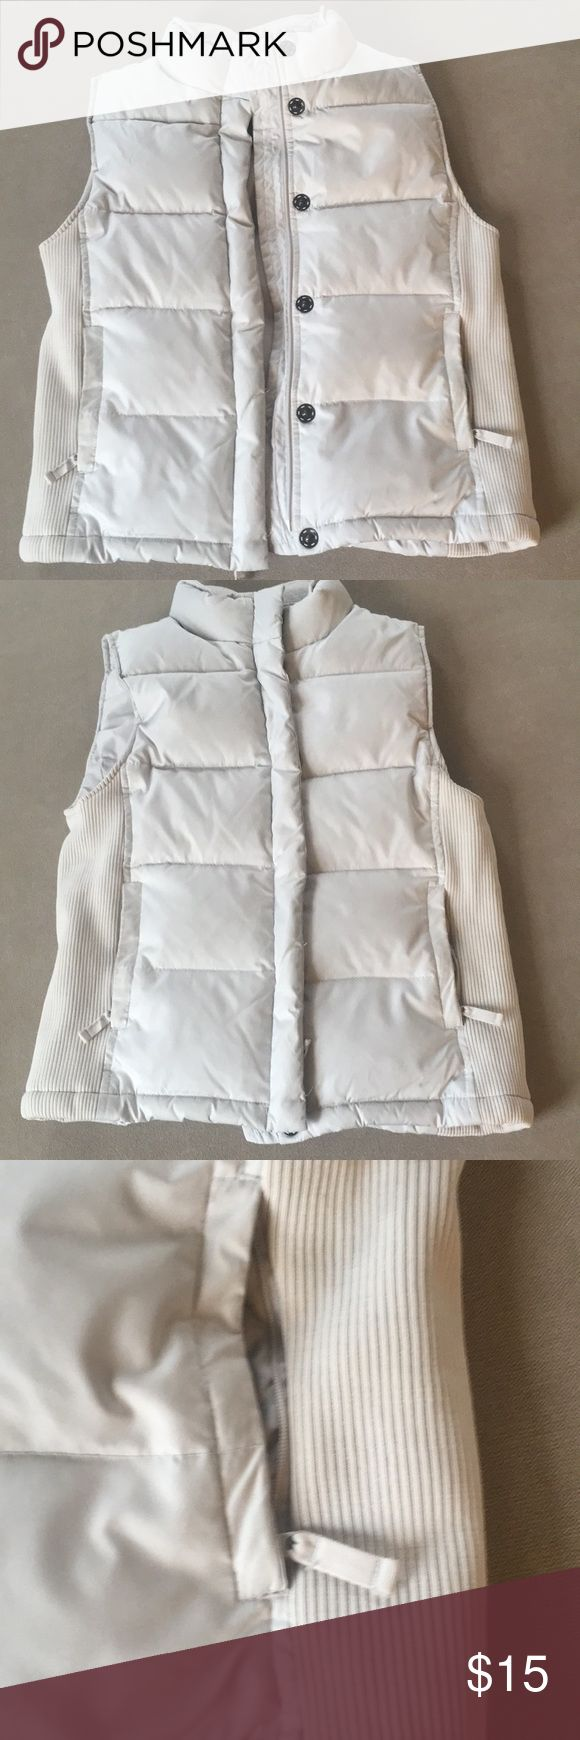 GAP XS Cream Vest feathers and down - like new GAP XS Cream Vest feathers and down - like new GAP Other